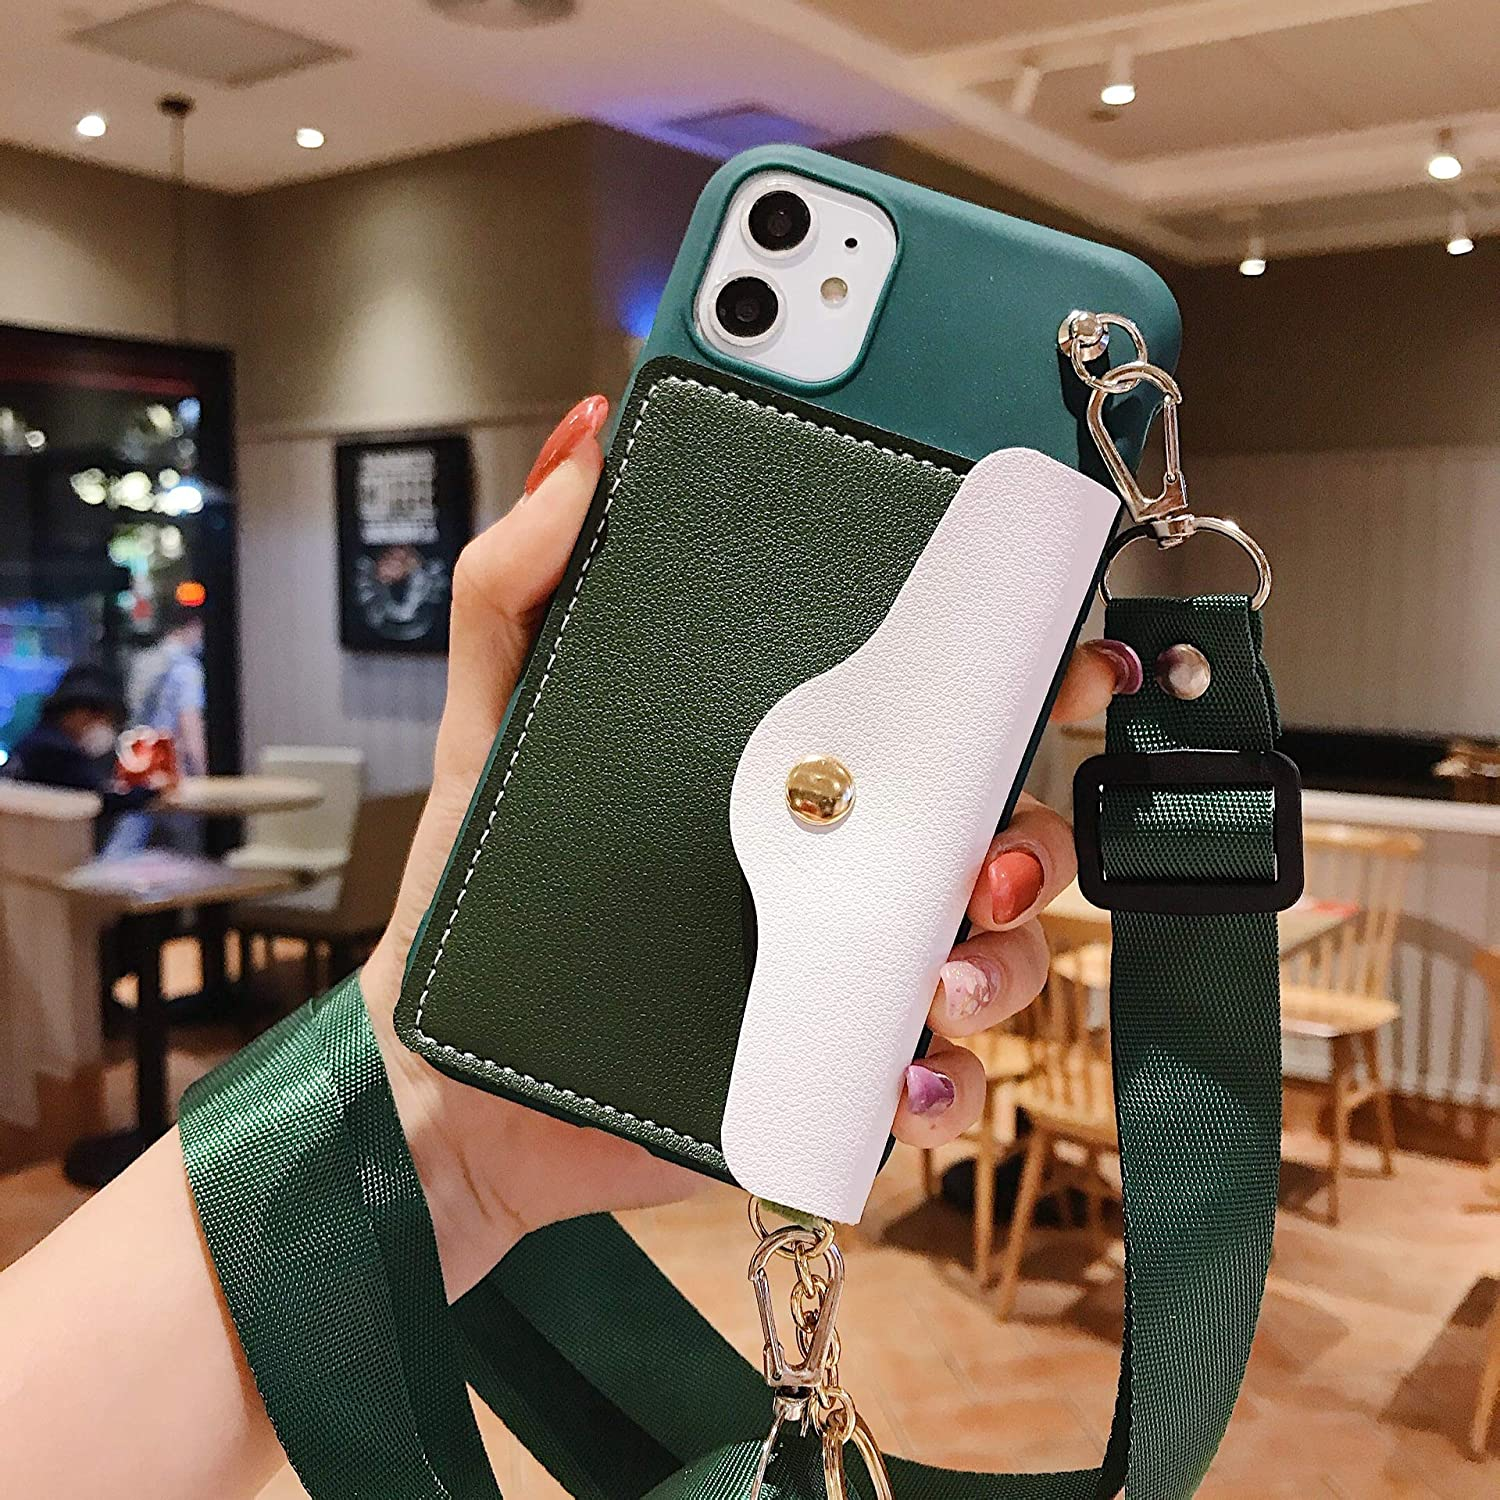 ISYSUII Crossbody Case for iPhone X/XS Wallet Case with Card Holder Slots Adjustable Lanyard Strap Soft Leather Purse Handbag Magnetic Clasp Protective Case for Girl Women,Green